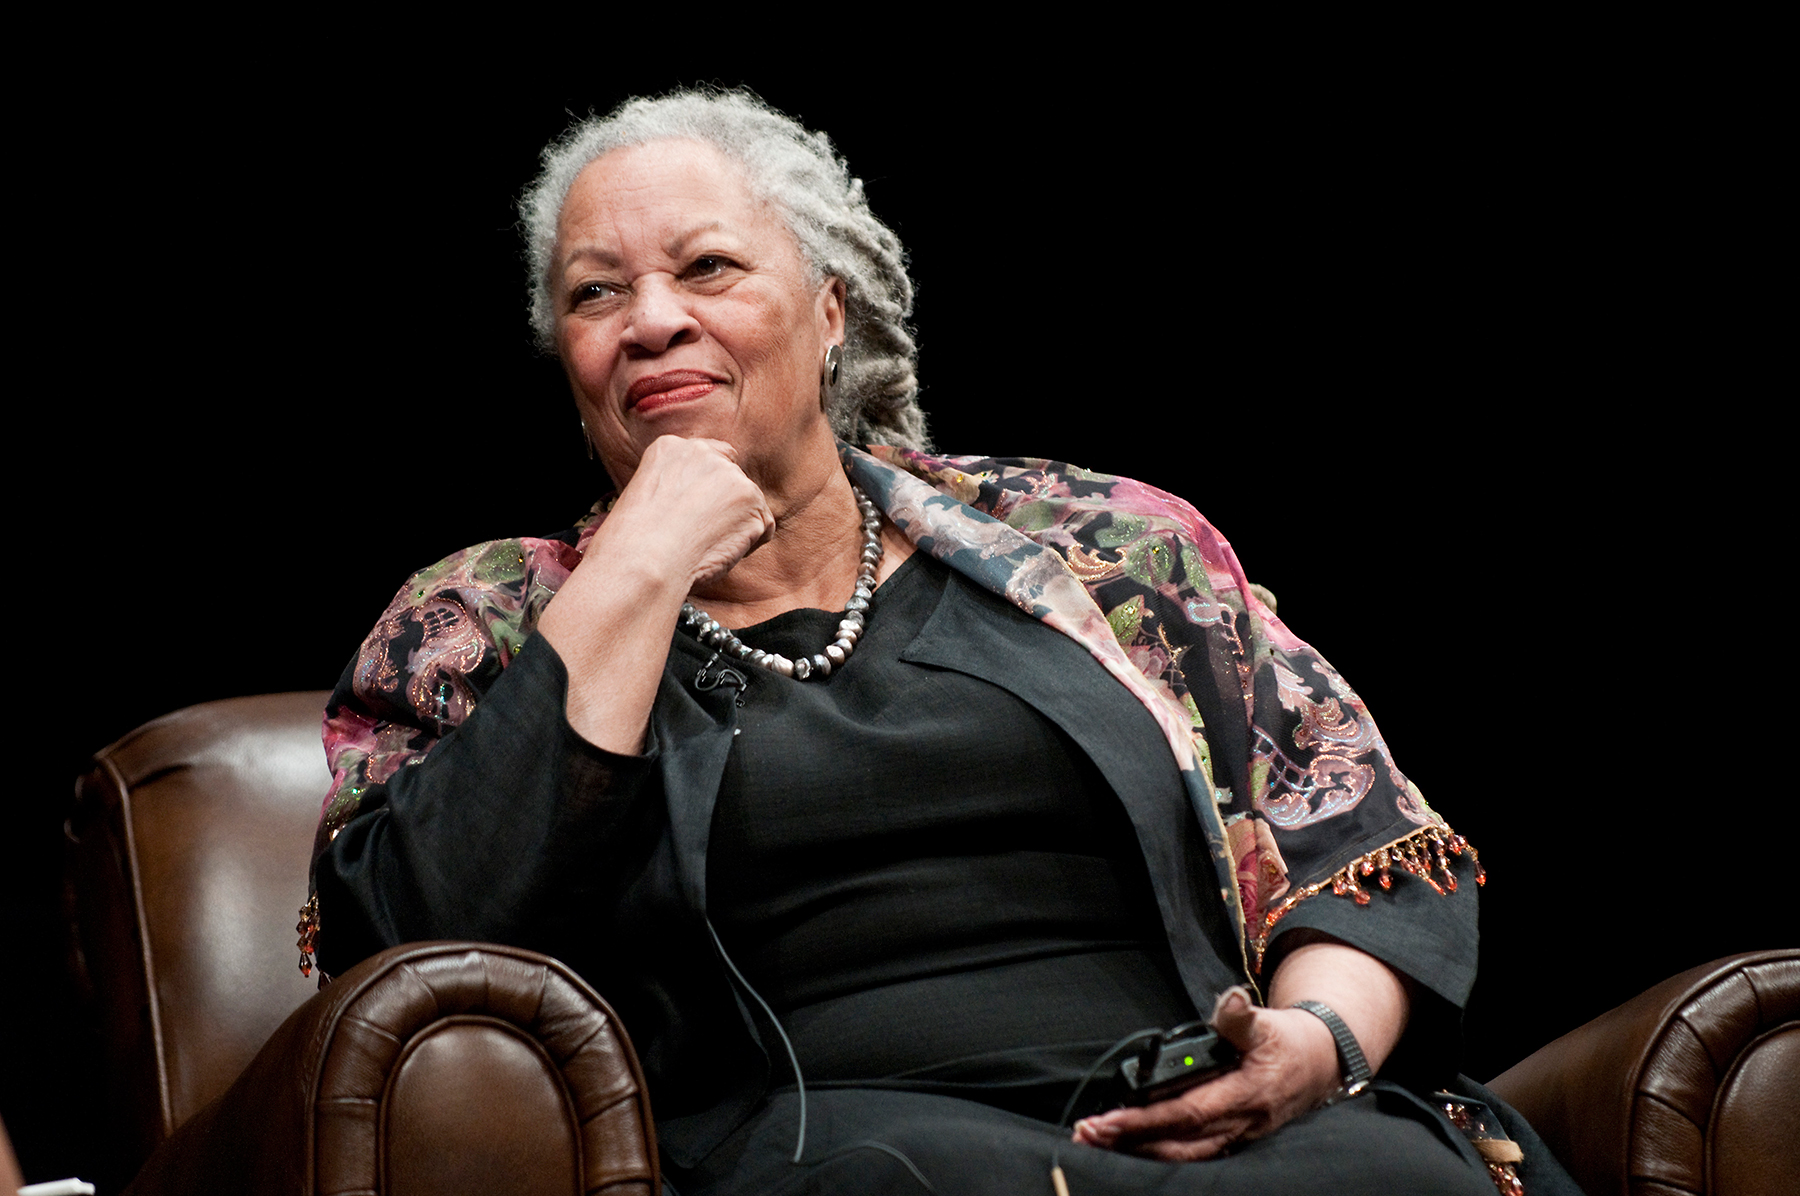 Toni Morrison attends the Carl Sandburg literary awards dinner at the University of Illinois at Chicago Forum on October 20, 2010 in Chicago, Illinois.